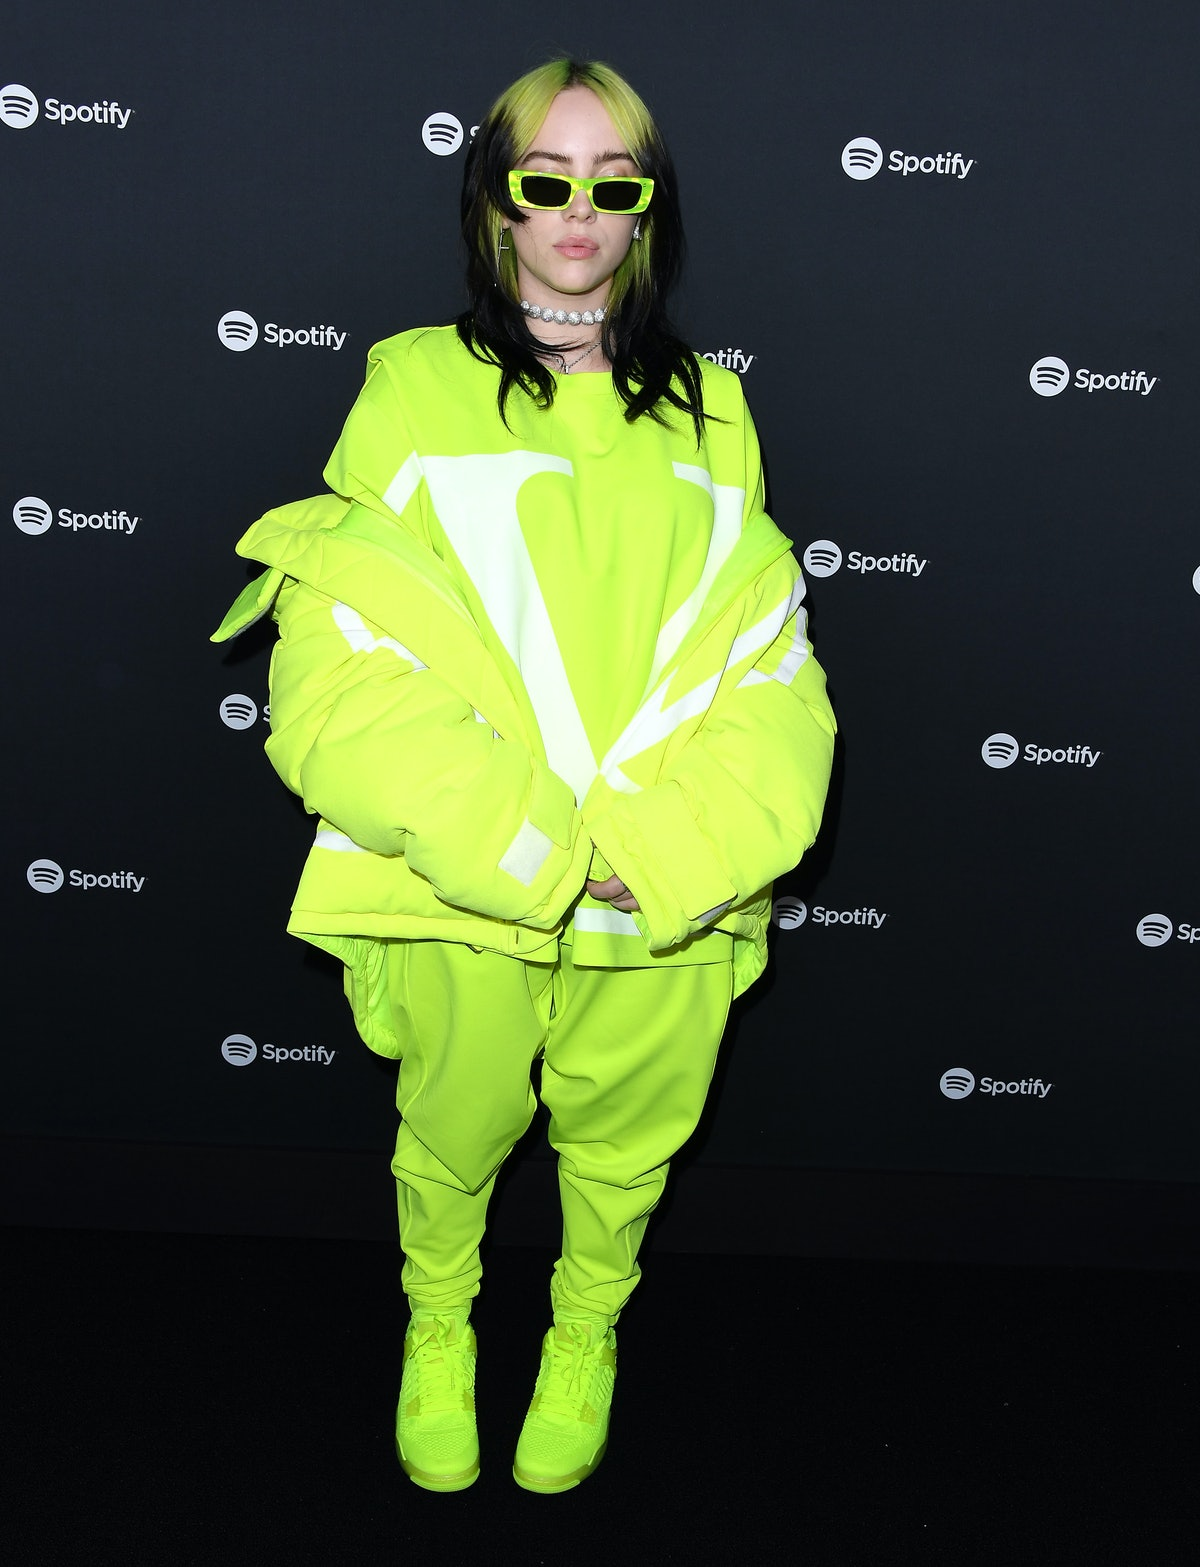 Billie Eilish arrives at the Spotify Best New Artist 2020 Party at The Lot Studios on January 23, 20...